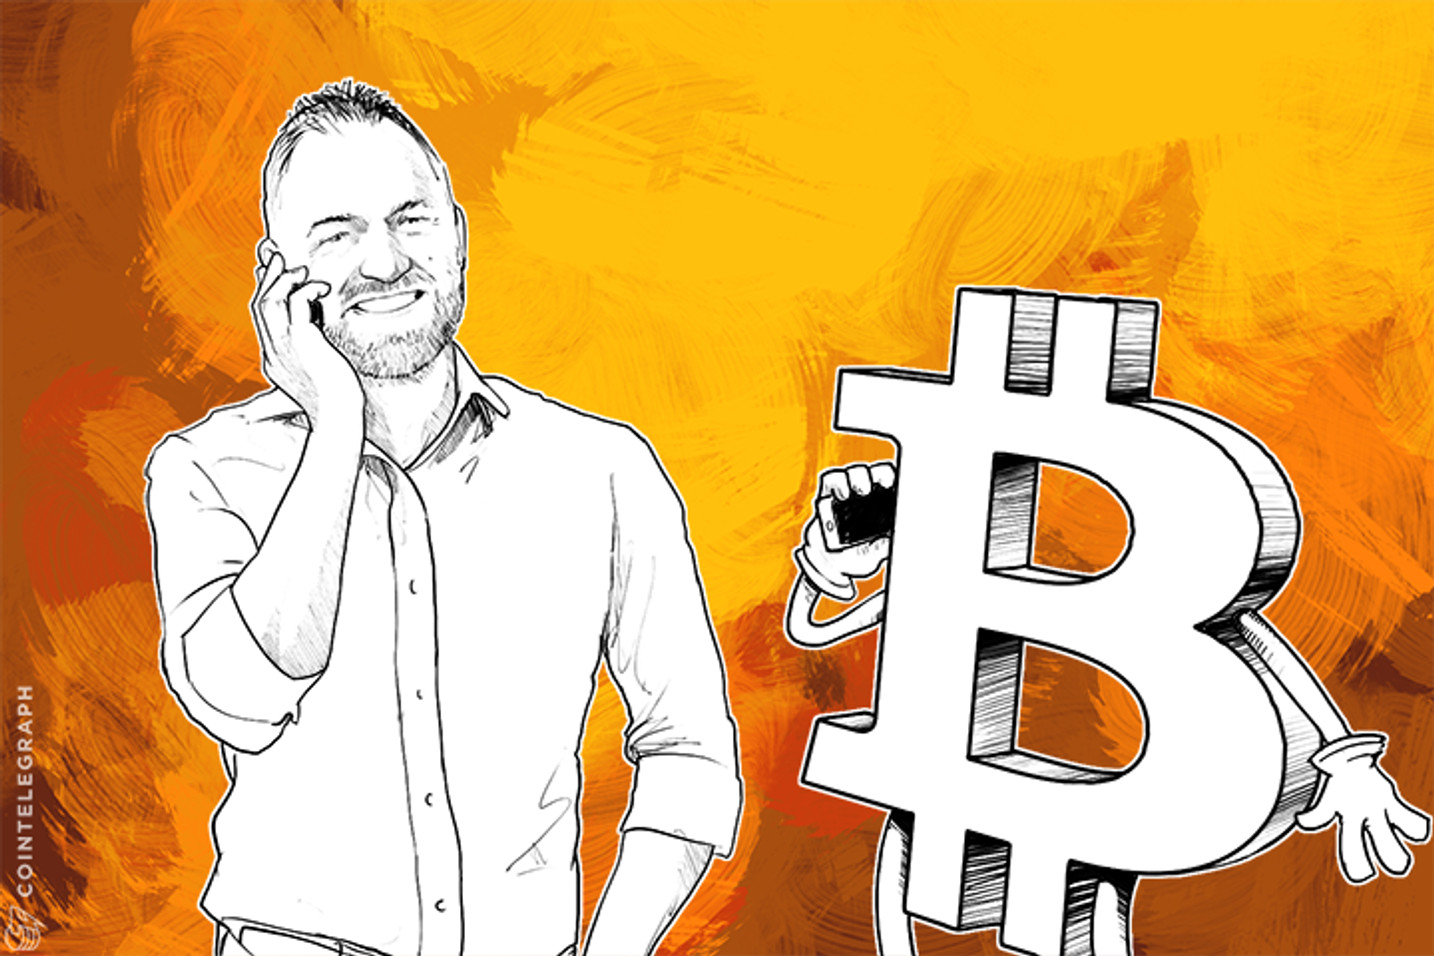 Bitphone Becomes First Bitcoin Phone Company, Skype Competitor